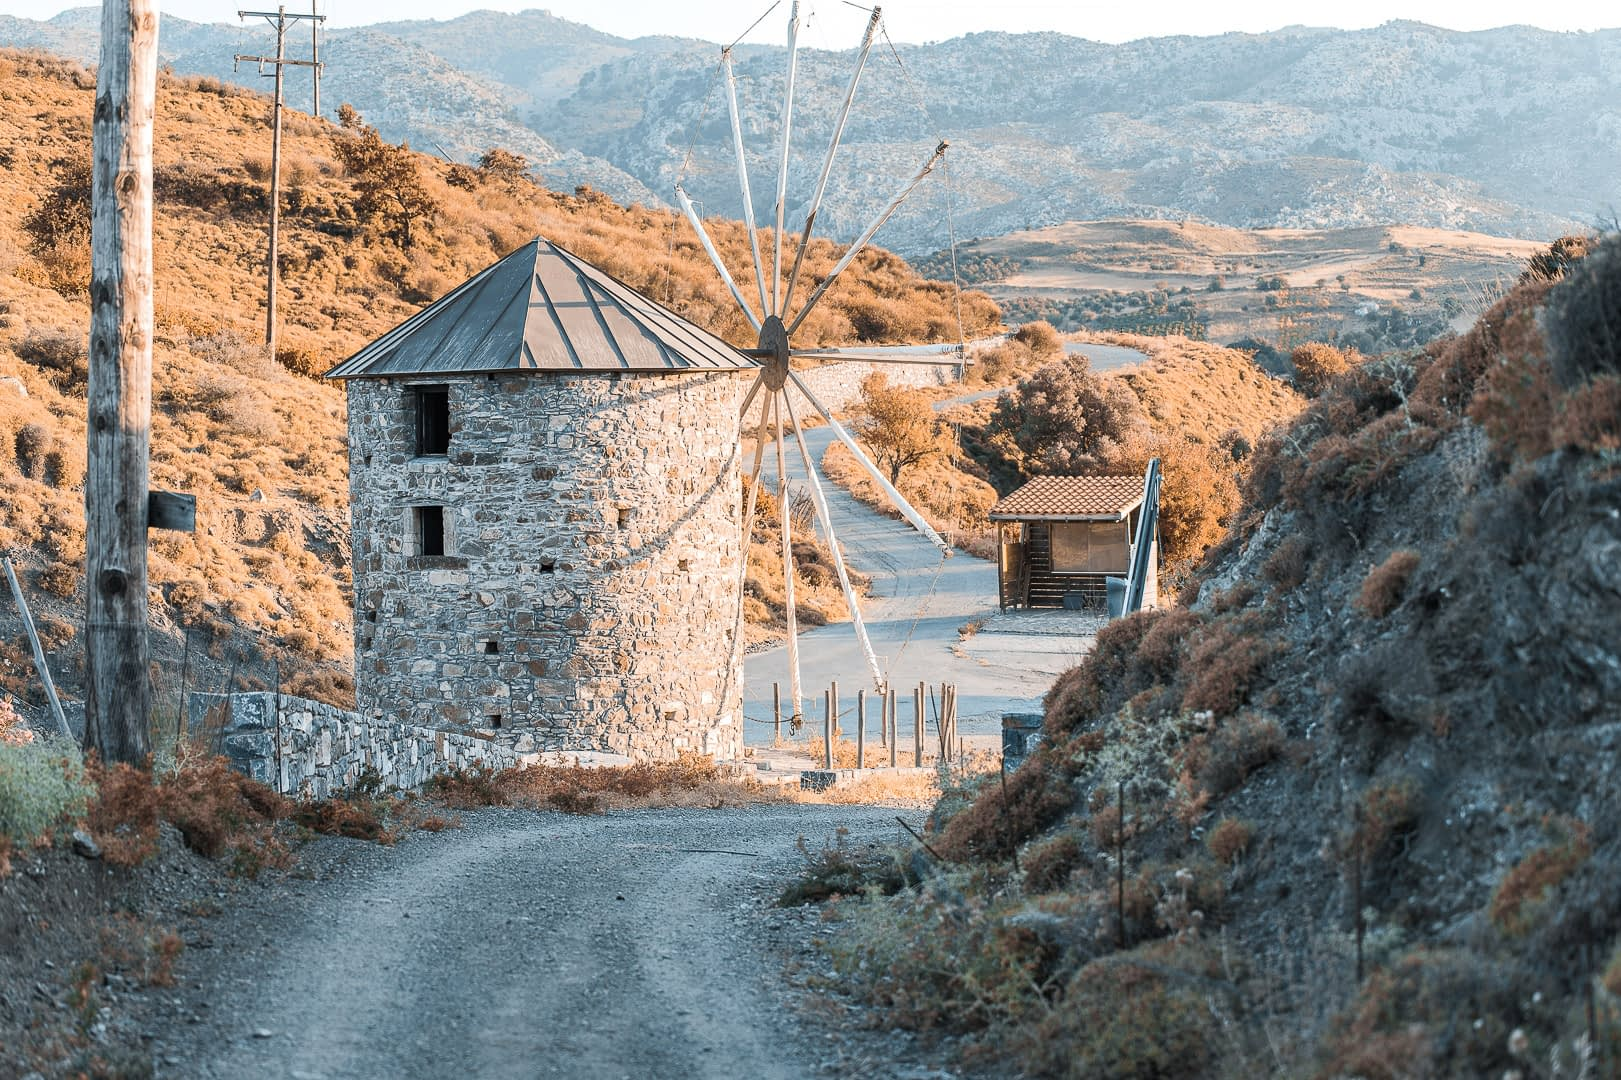 An old mill in an old village in a beautiful place in crete.